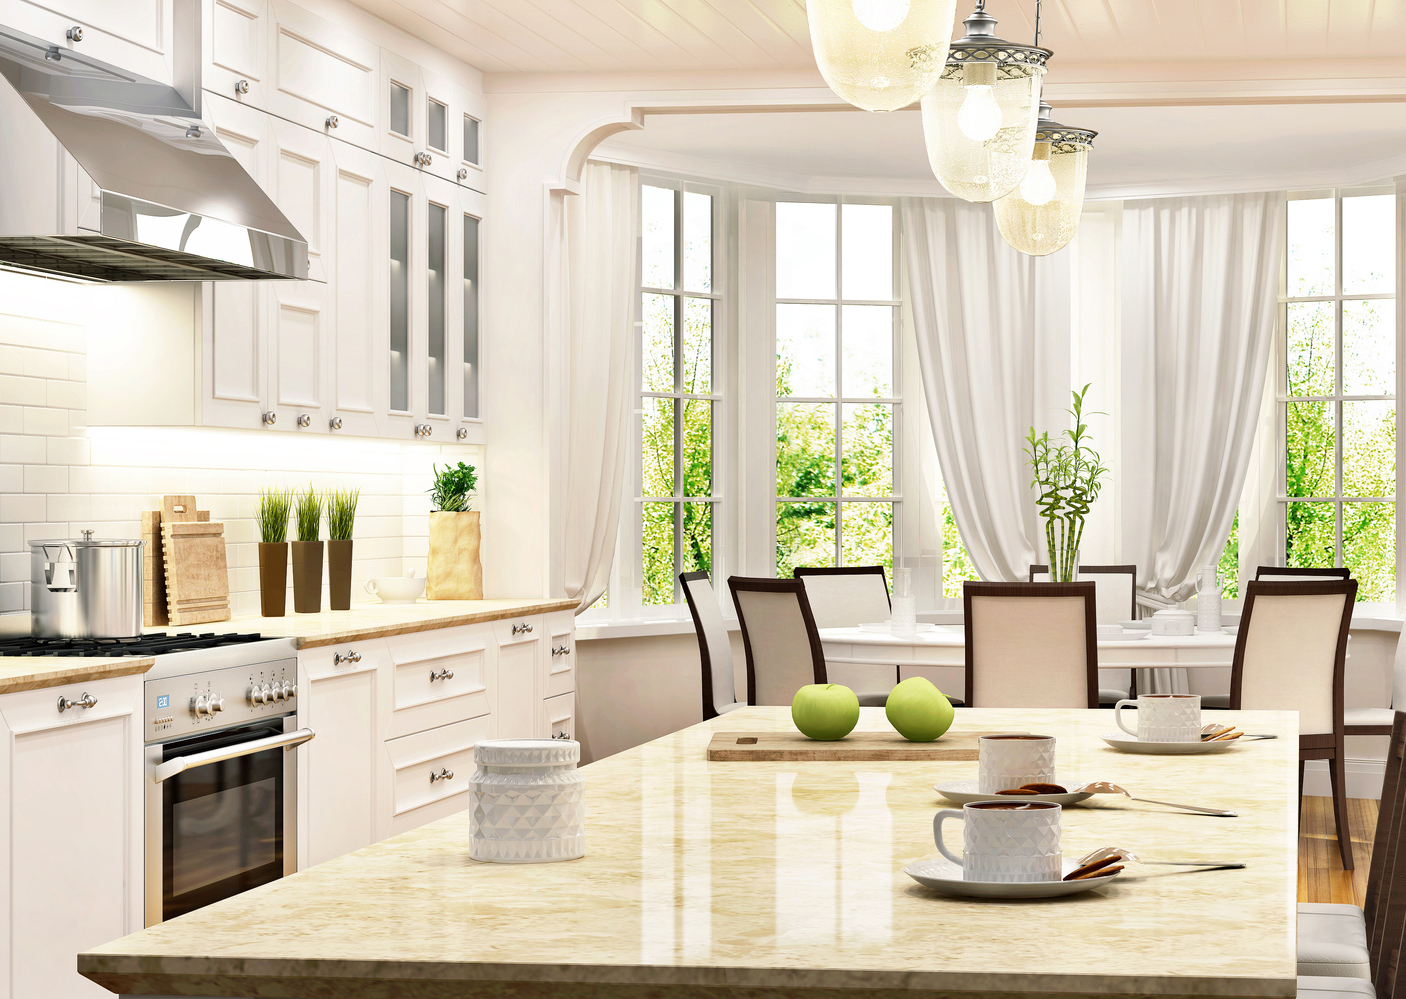 Kitchen Design Trends for 2020/2021